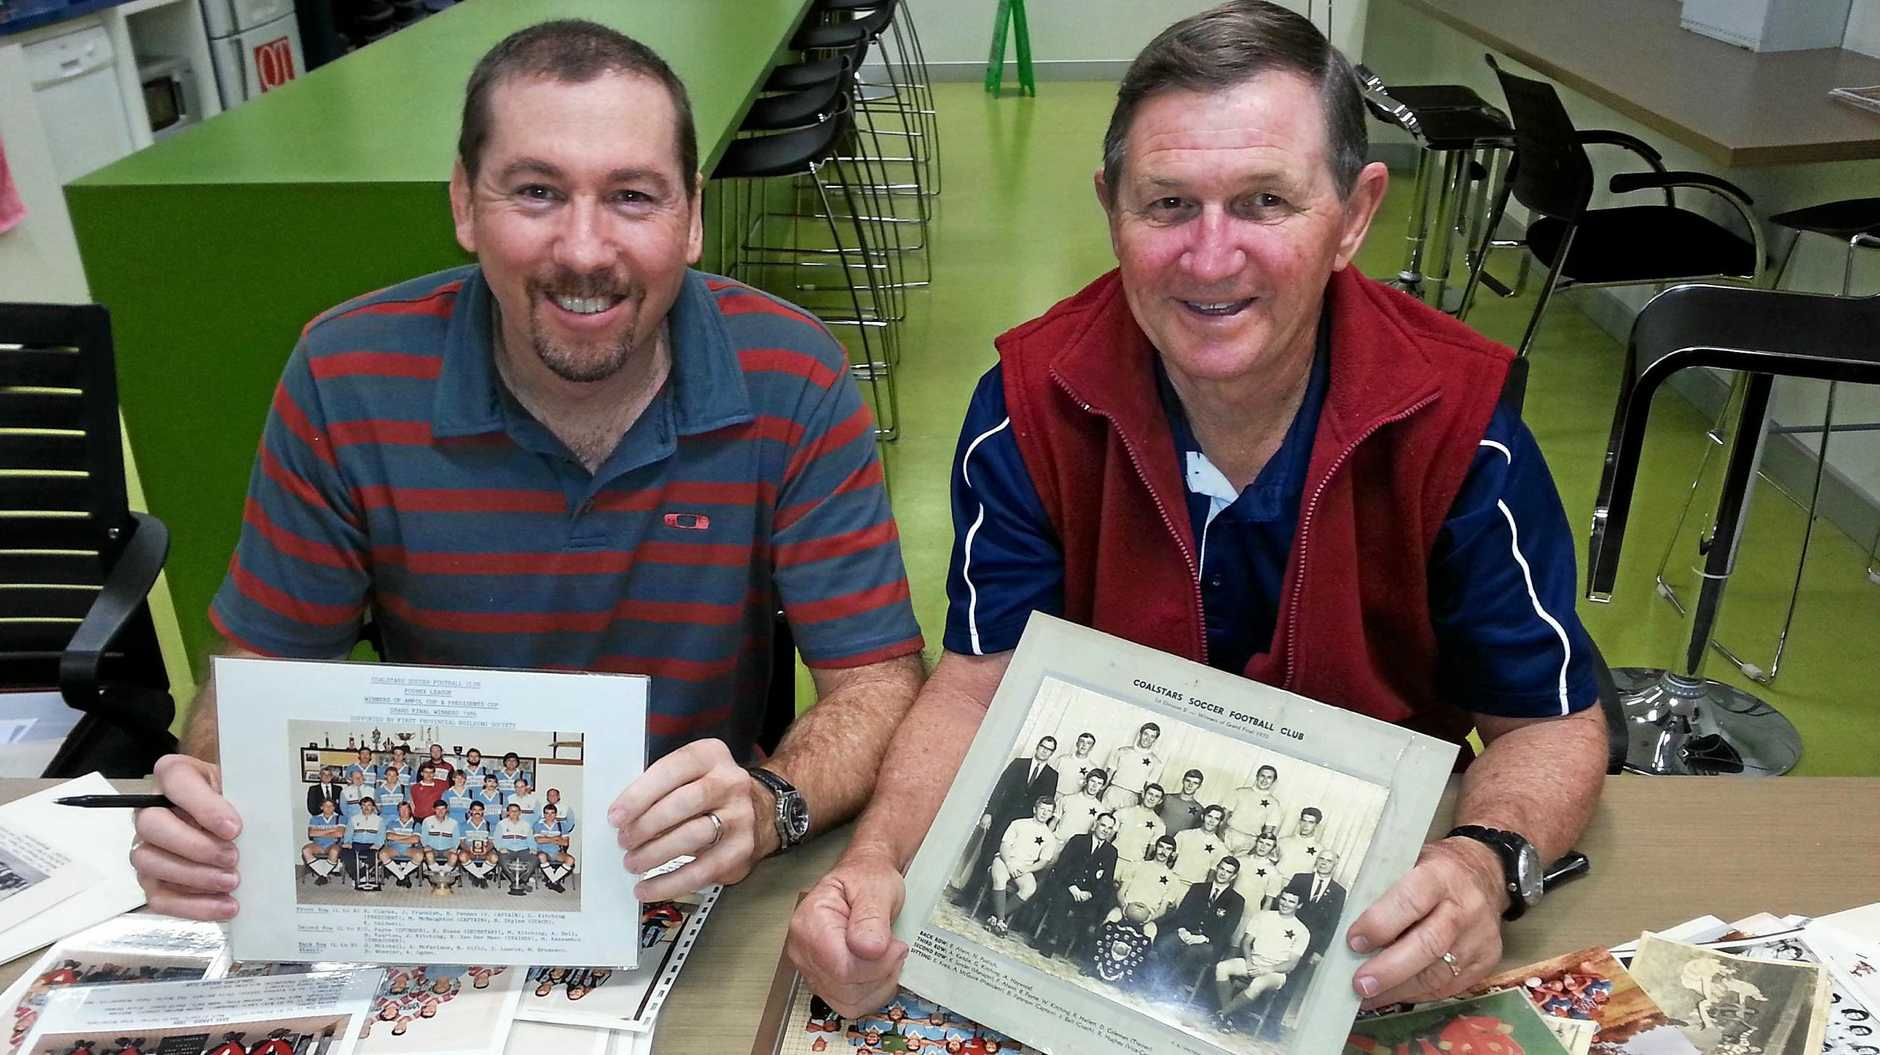 Ipswich football researcher Ross Hallett (right) with another stalwart Garth Mitchell. Hallett is eager for more memorabilia to complete an exciting Ipswich football history project.